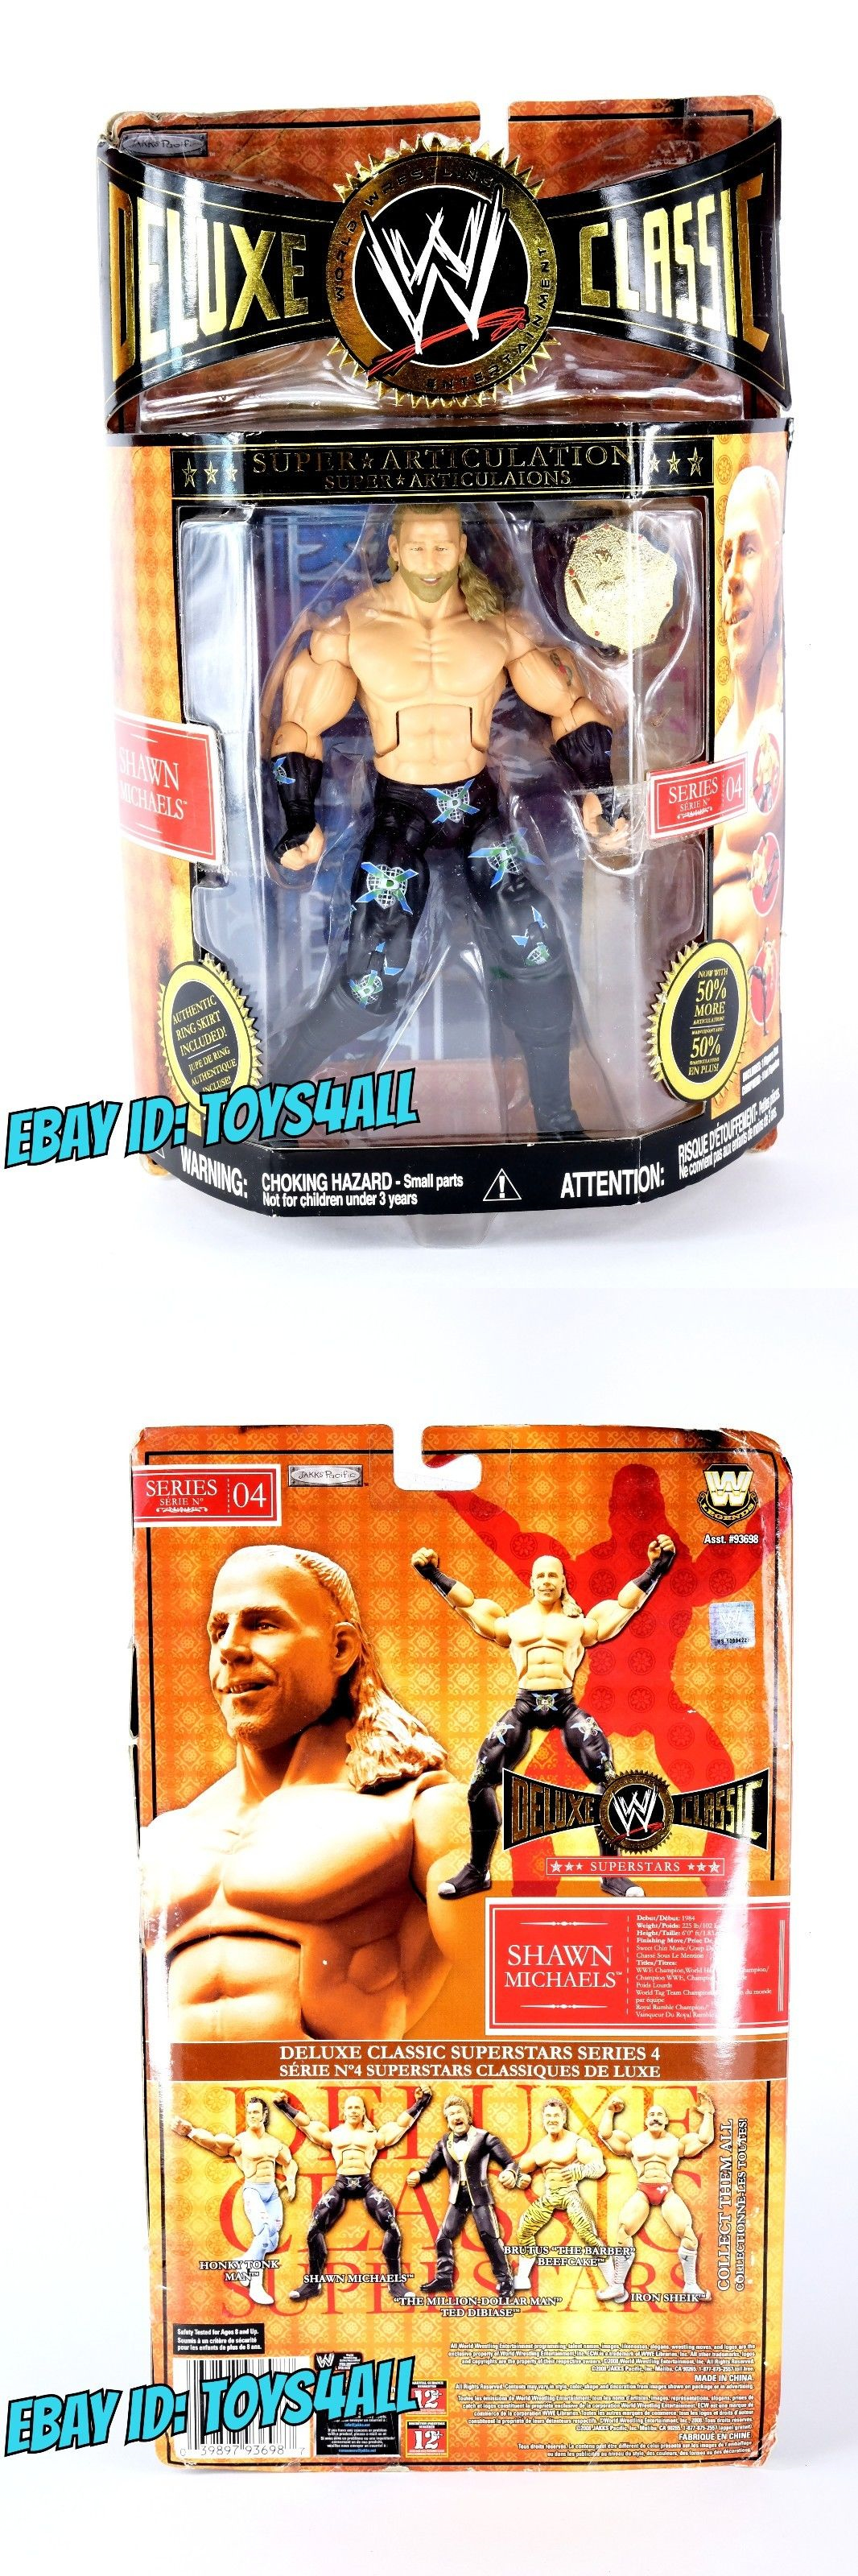 Someone bought this wwf superstars shoot out tabletop hockey game - Sports 754 Shawn Michaels Wwe Jakks Deluxe Classic Superstars Wrestling Figure Moc_bx3